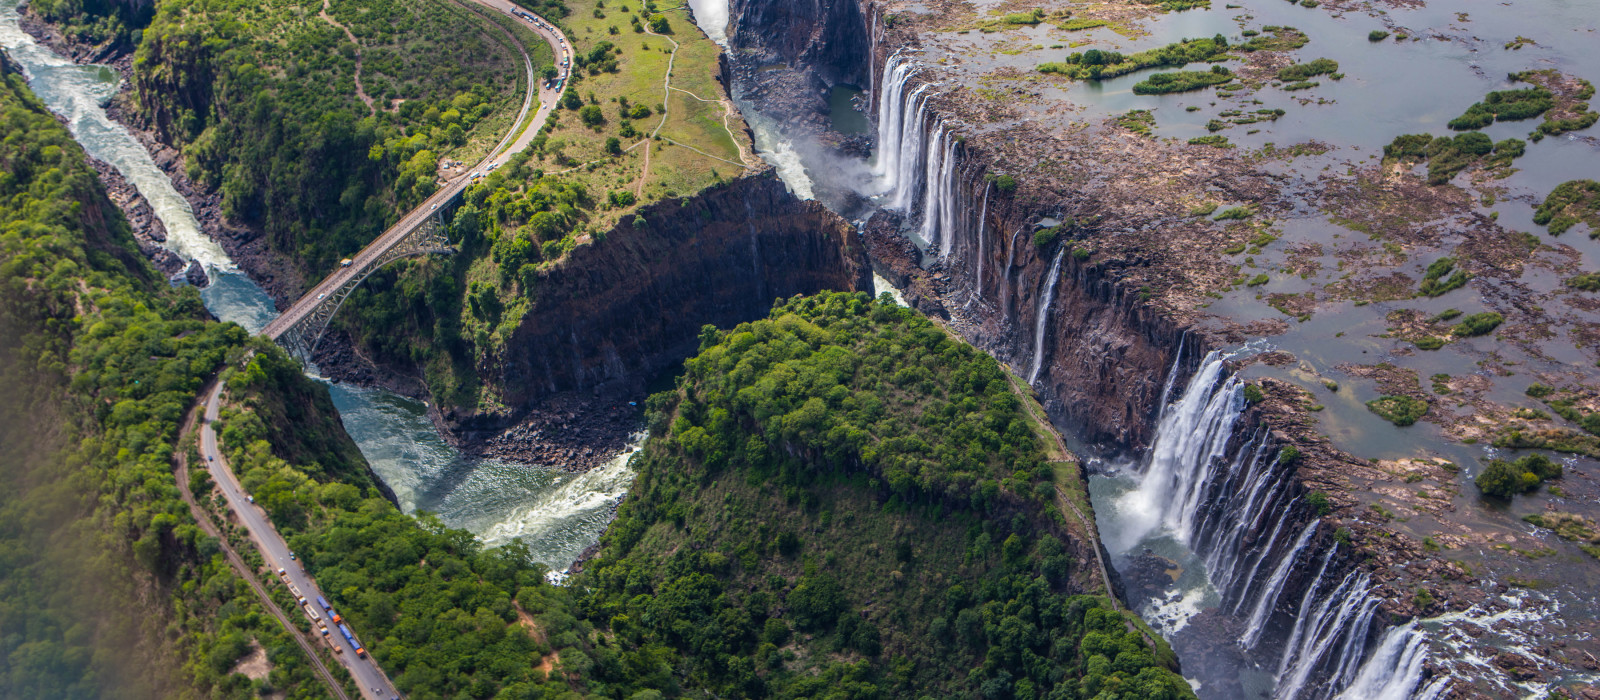 Victoria falls in Zimbabwe, Africa - Best time to visit Zimbabwe